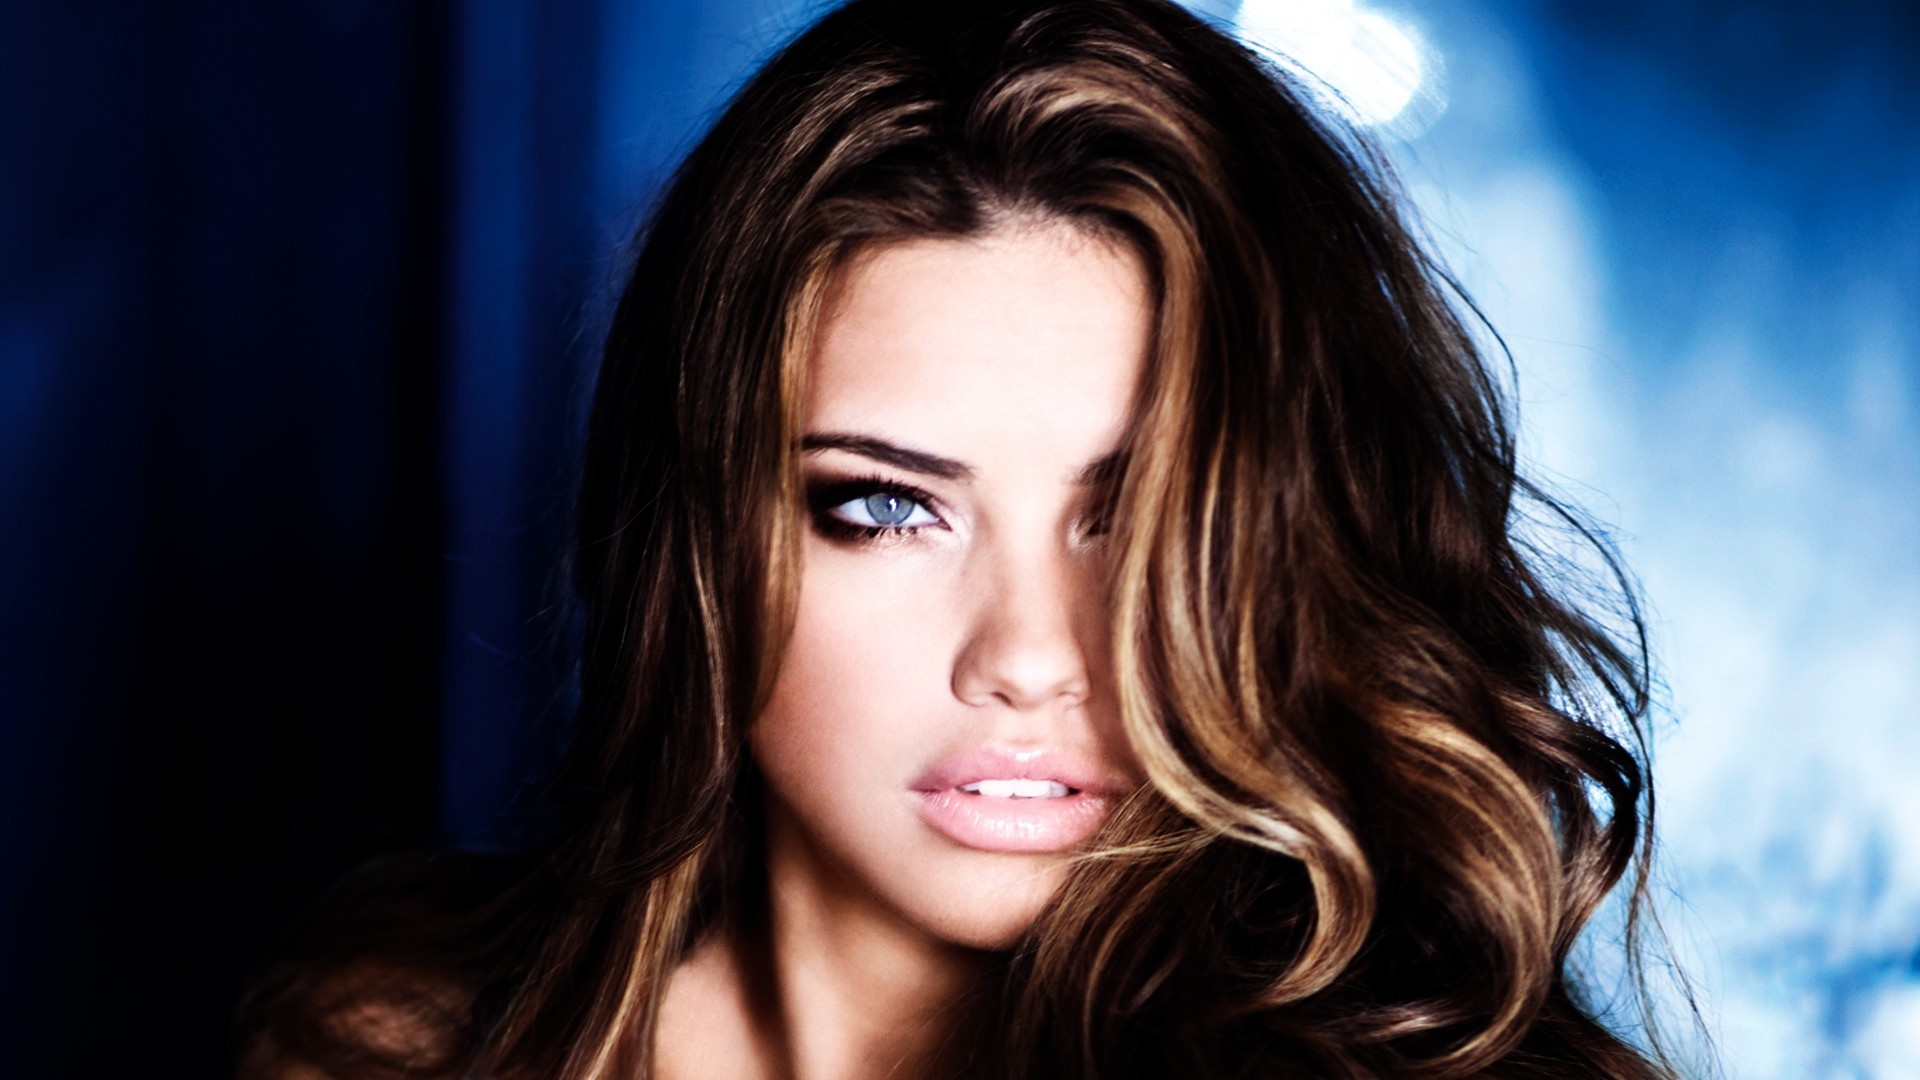 brunettes eyes adriana lima HD Wallpaper